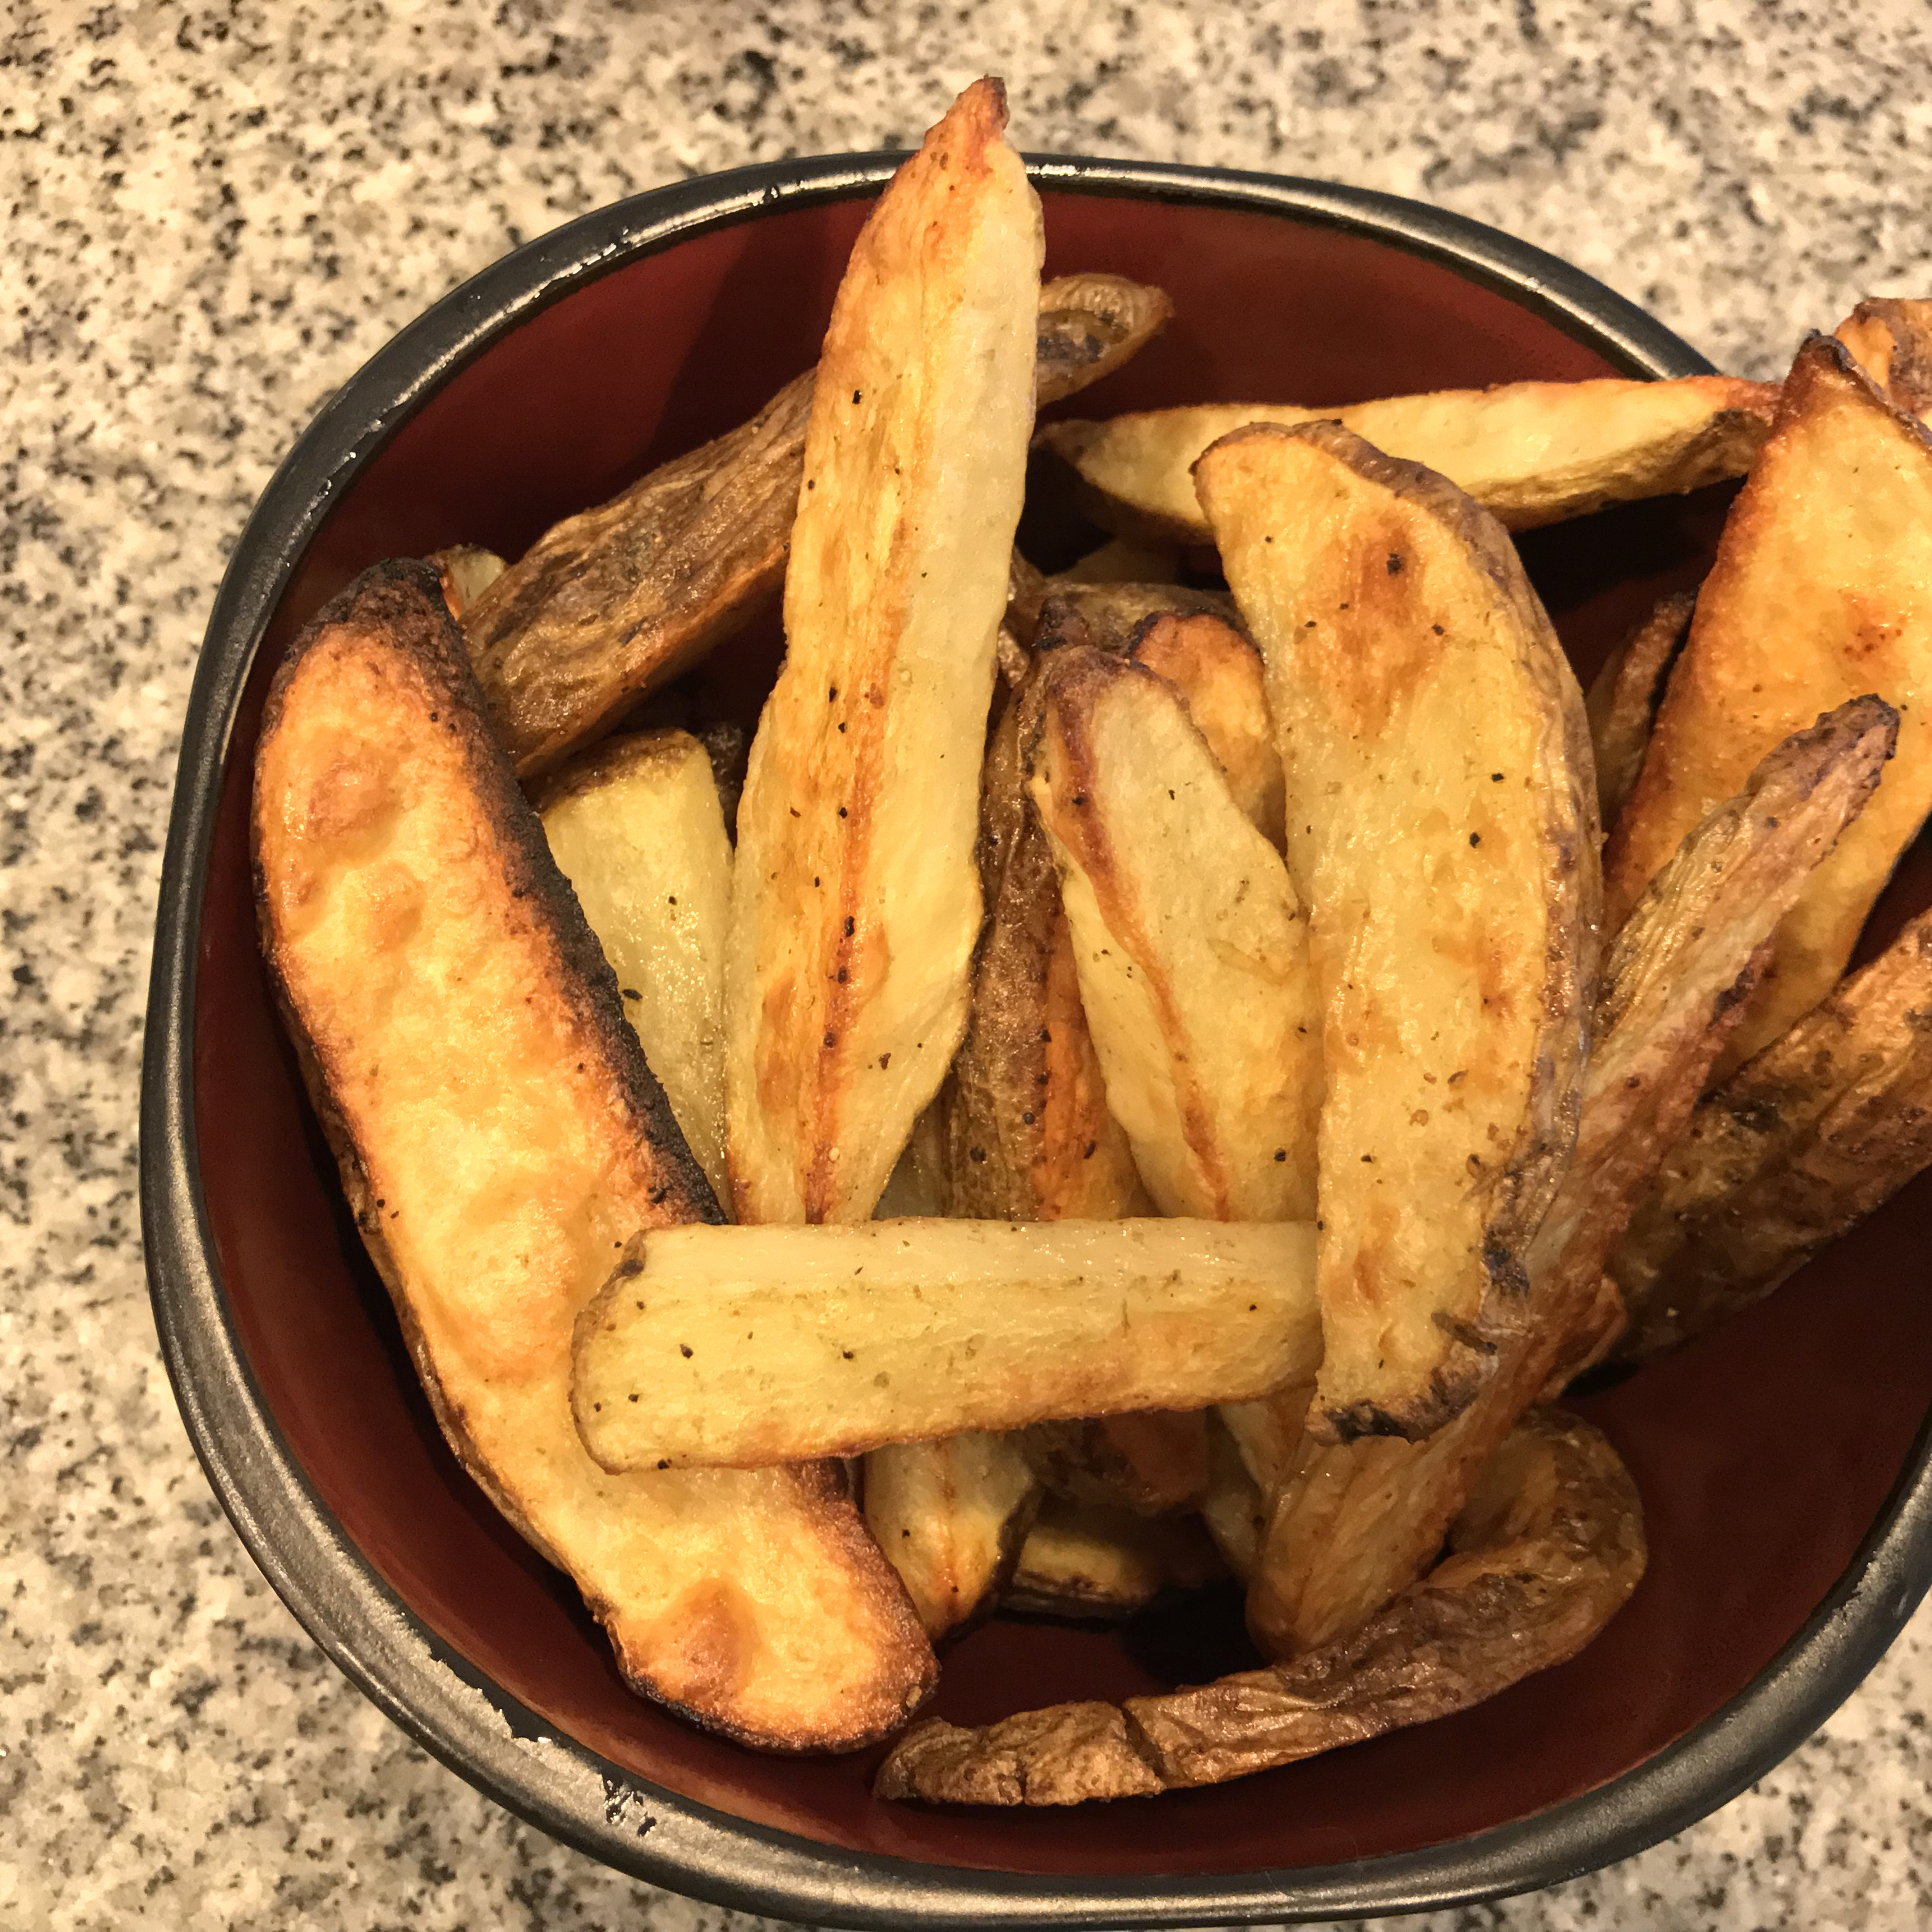 Best Baked French Fries CrimBrulee